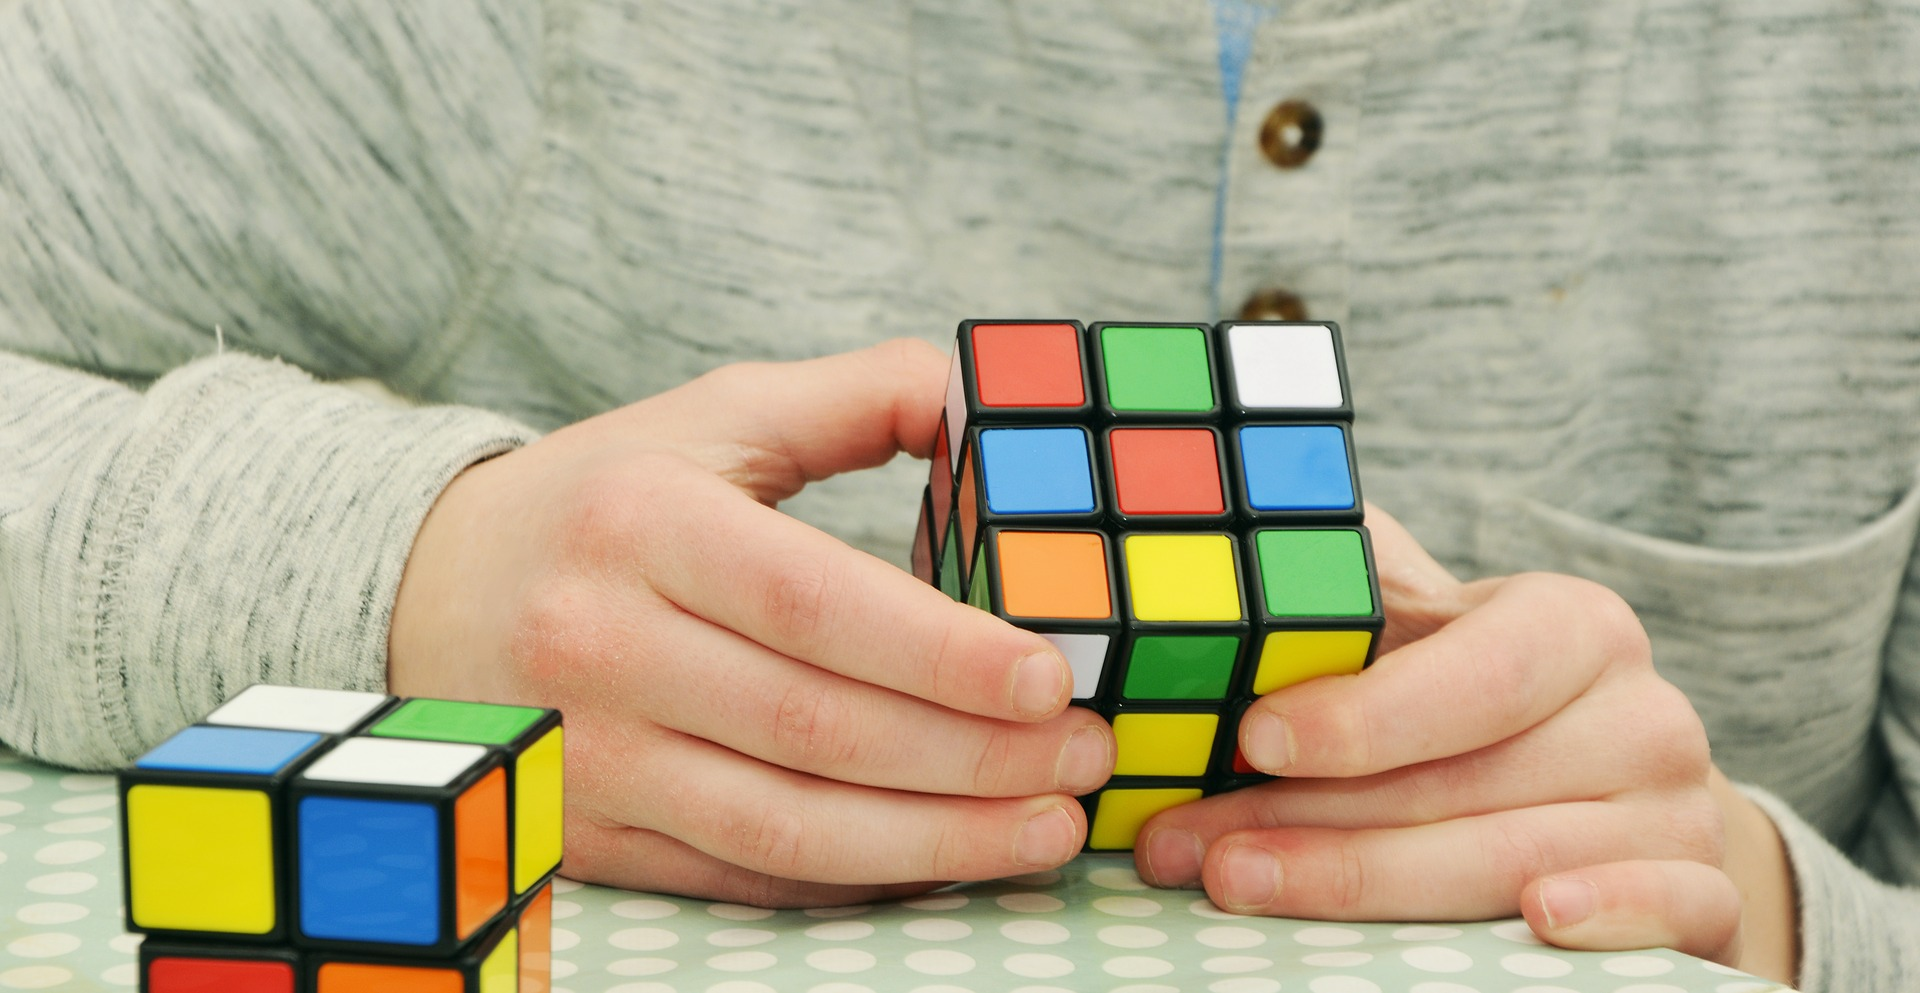 A person wearing a beige and grey patterned button up sweater holds an unsolved 3x3 rubik